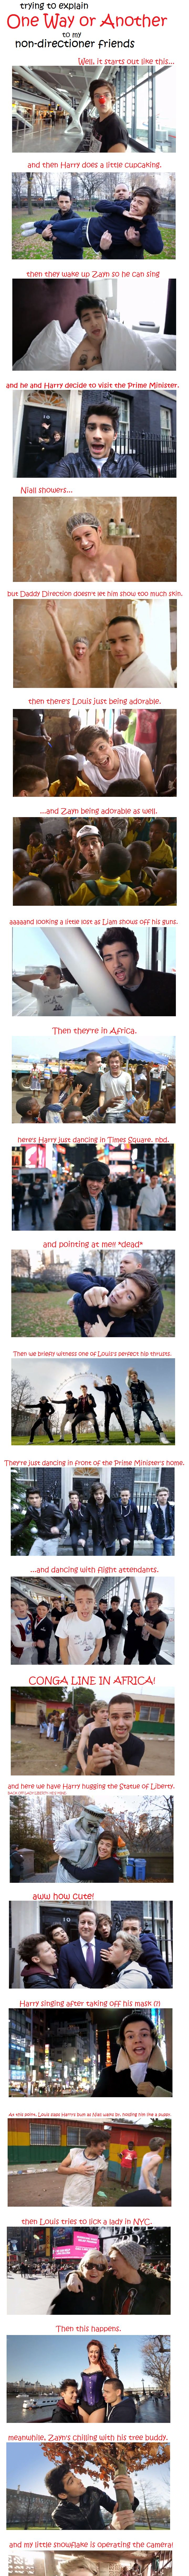 Explaining the One Way or Another video to people who aren't Directioners. PRETTY MUCH. follow me & visit : http://womanmag.net/